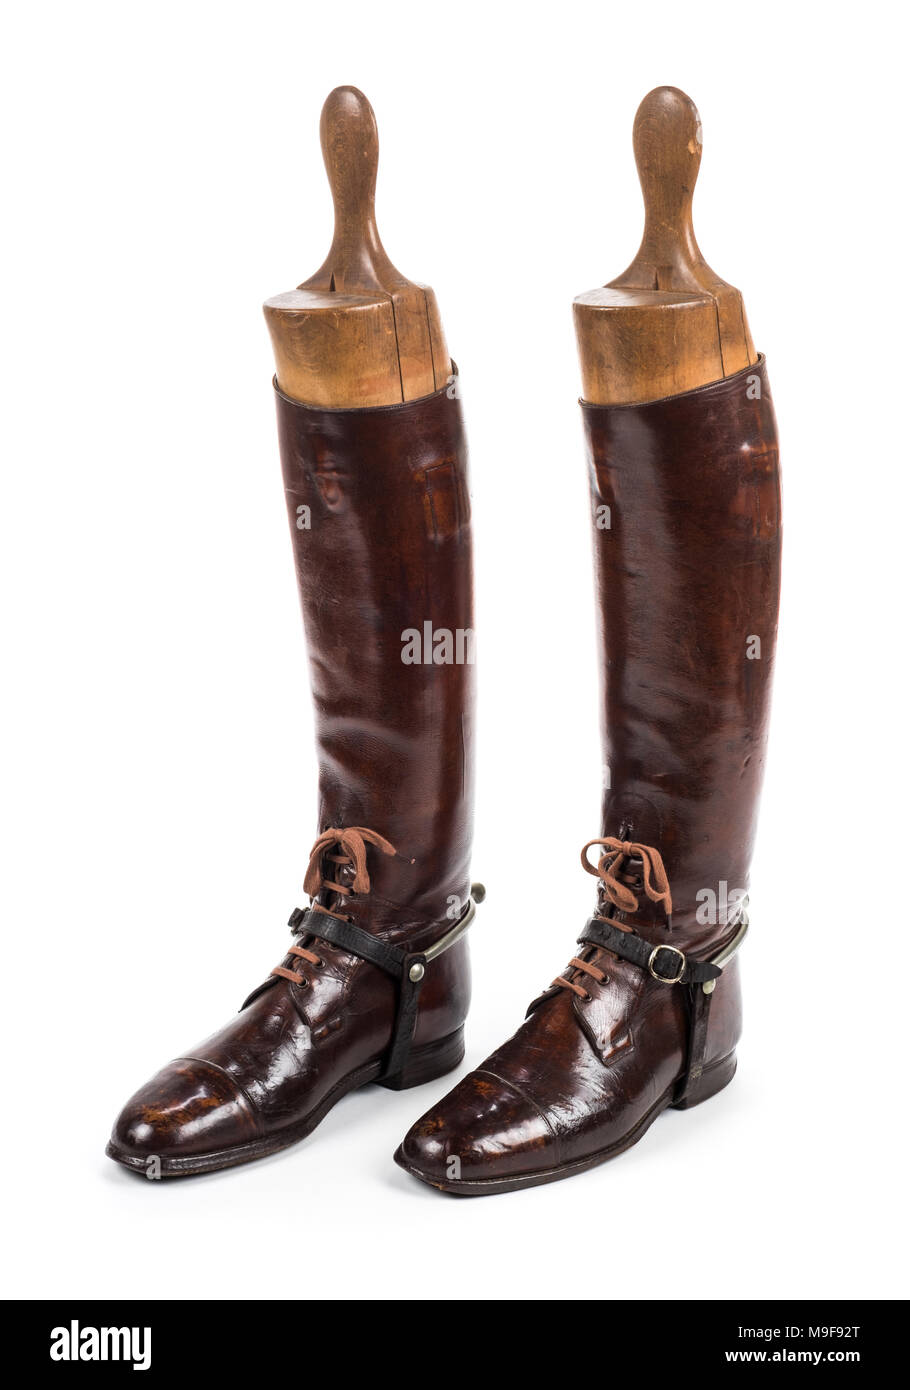 Pair of WW1 British Officer's leather boots with wooden trees - Stock Image